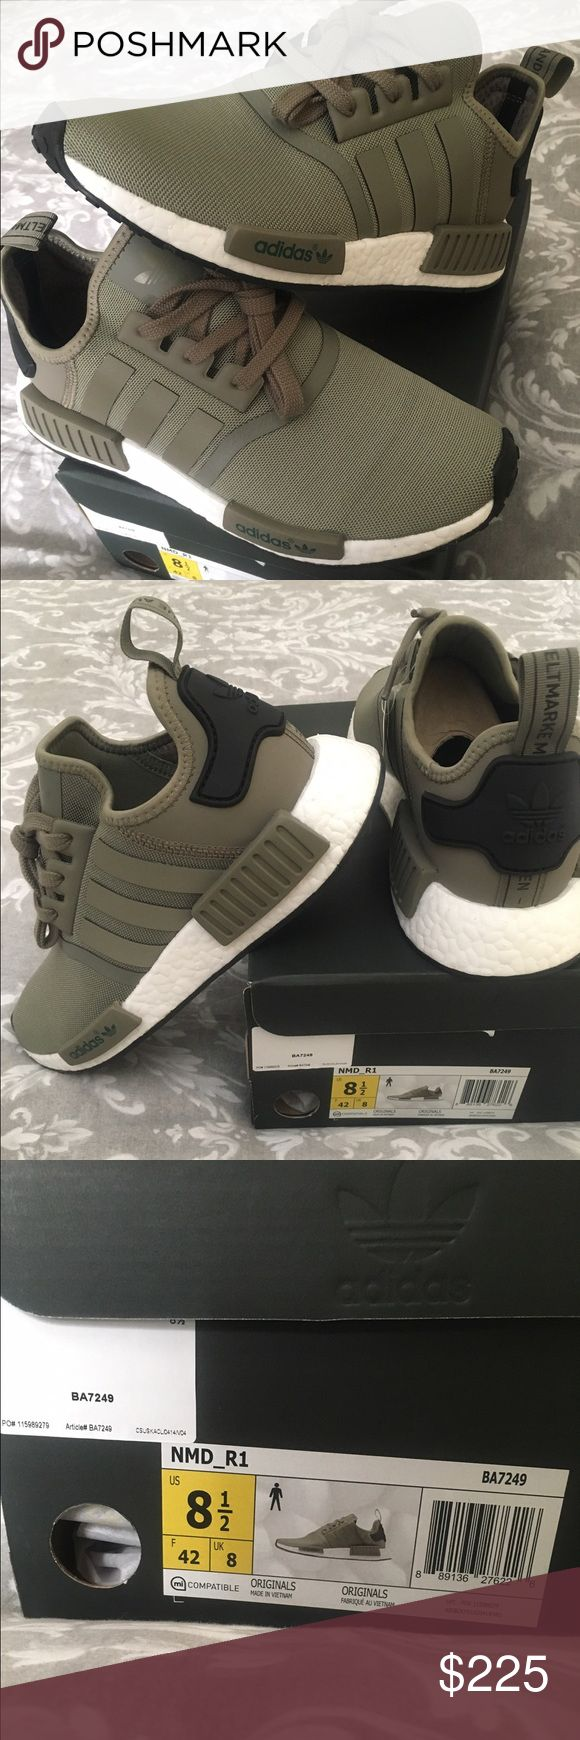 Adidas NMD R1 Trace Cargo Adidas NMD R1 Trace Cargo; new unworn in original box. Ordered from Footlocker Adidas Shoes Athletic Shoes